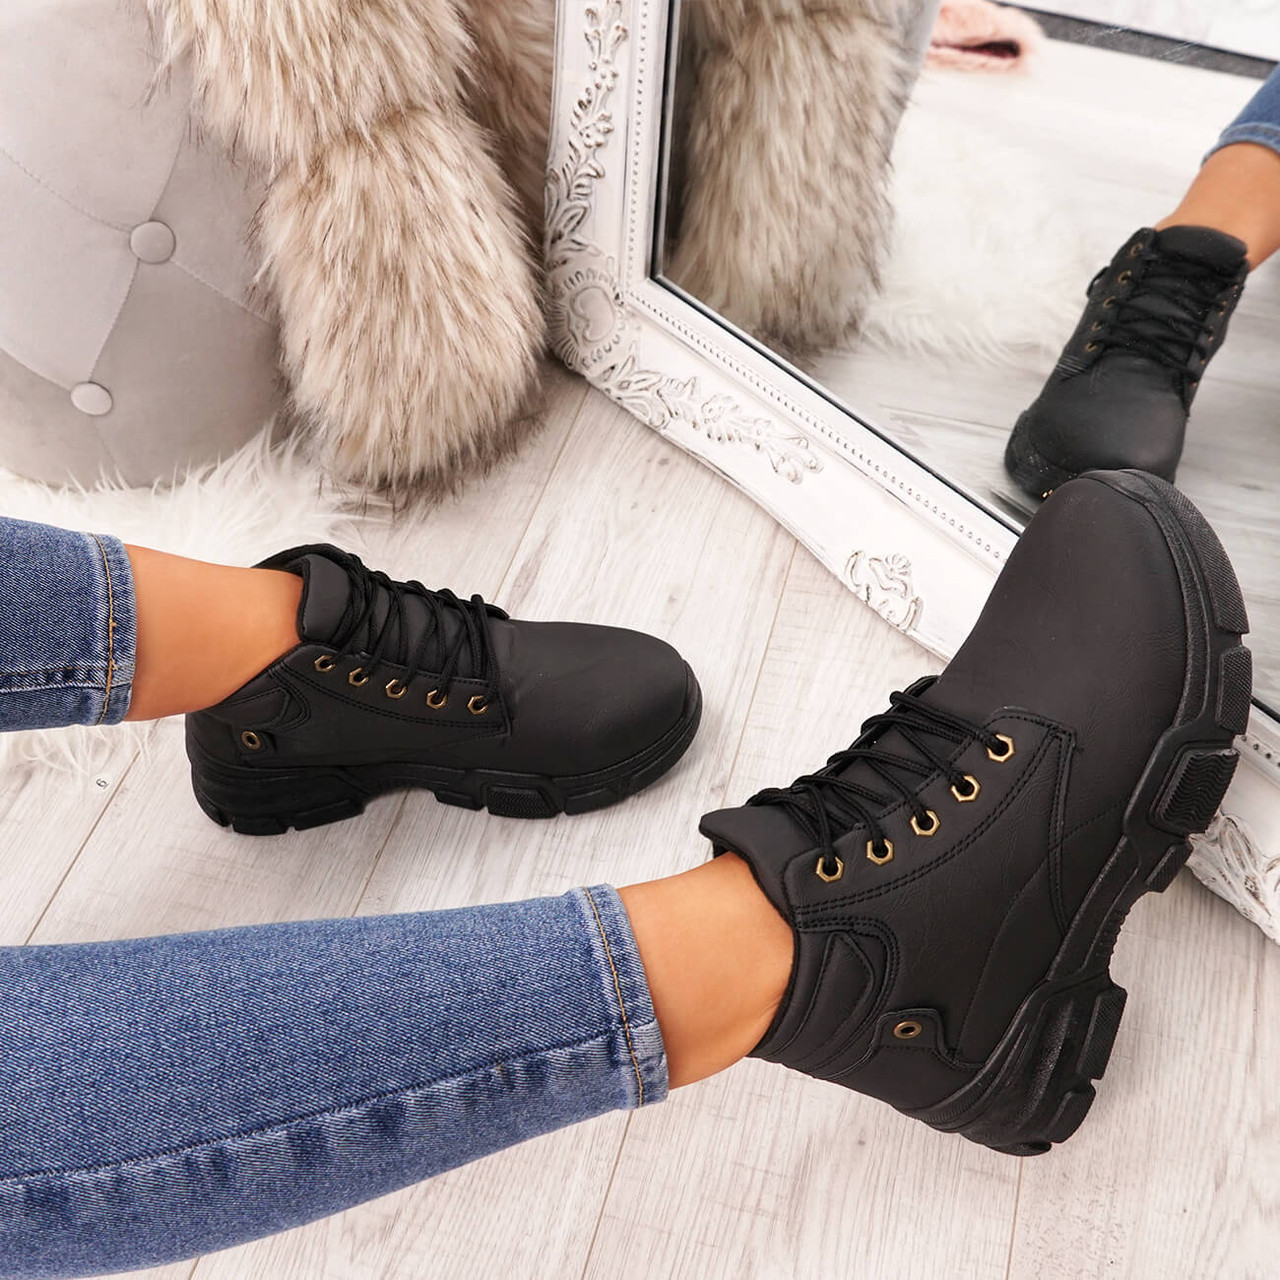 Henna Black High Top Trainers - Ankle